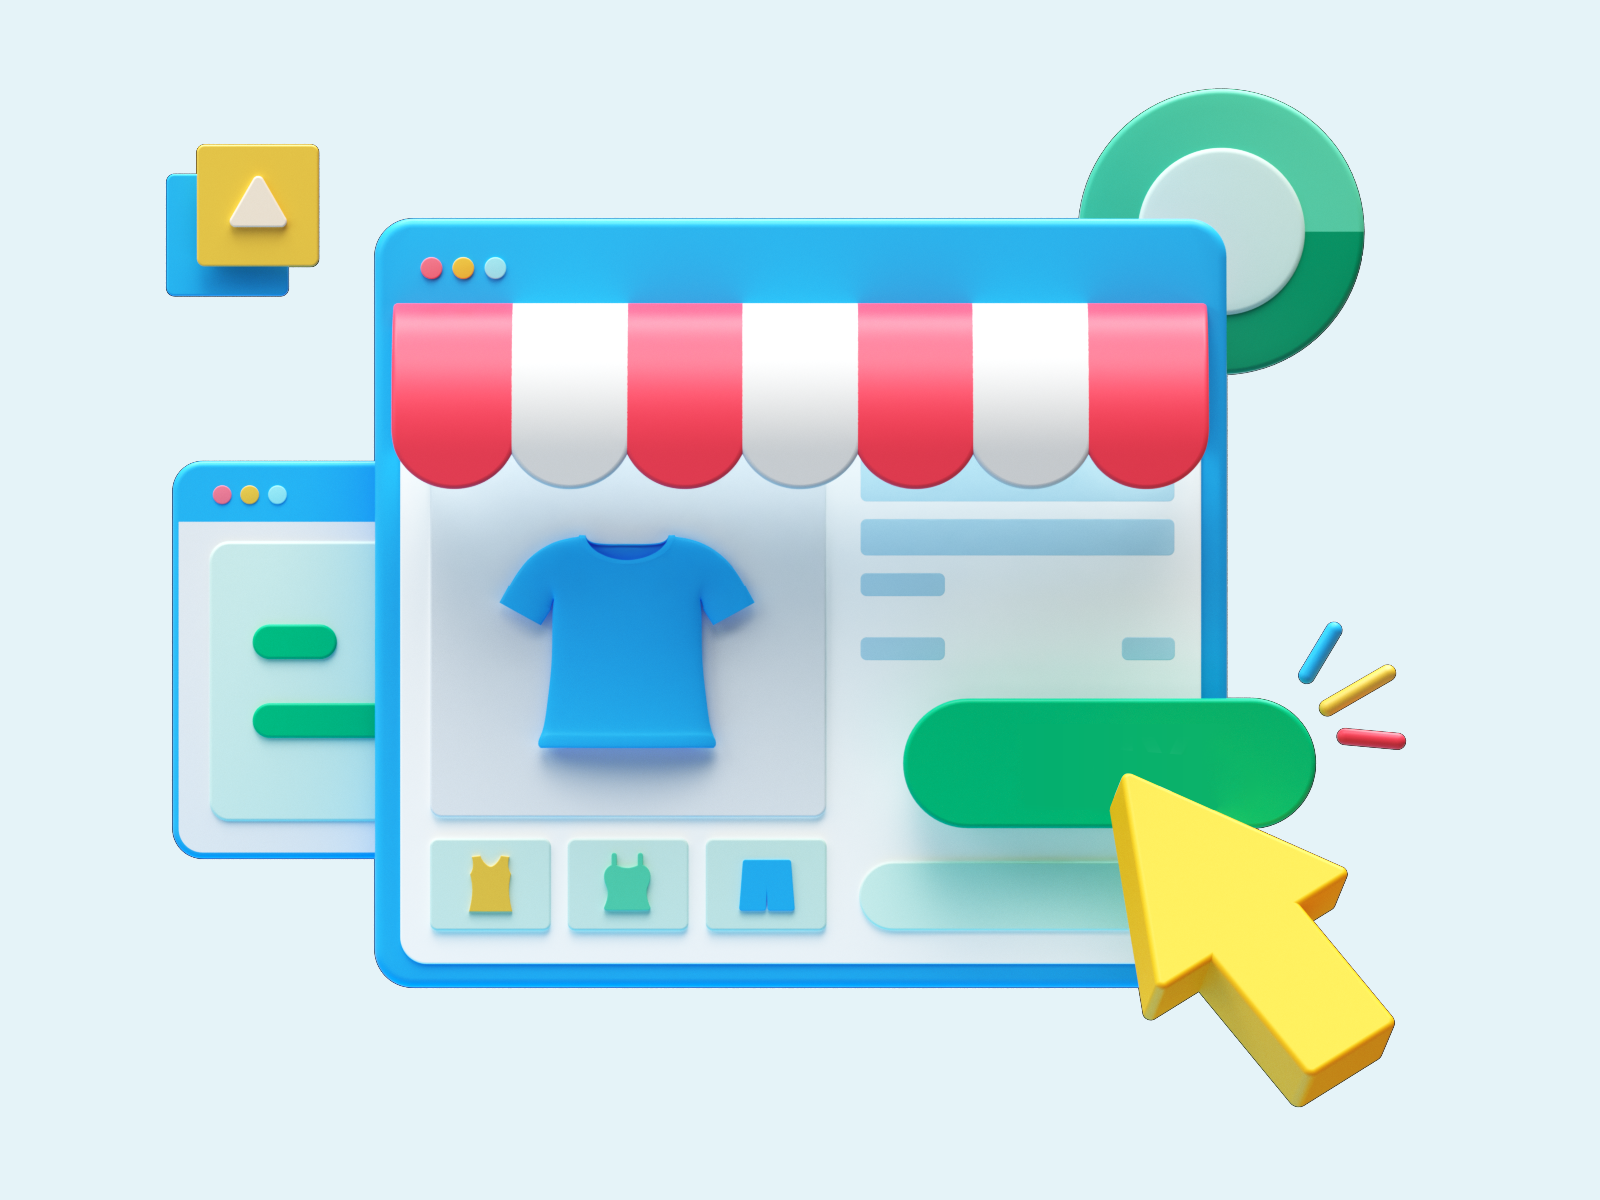 One Click Upsell Post Purchase